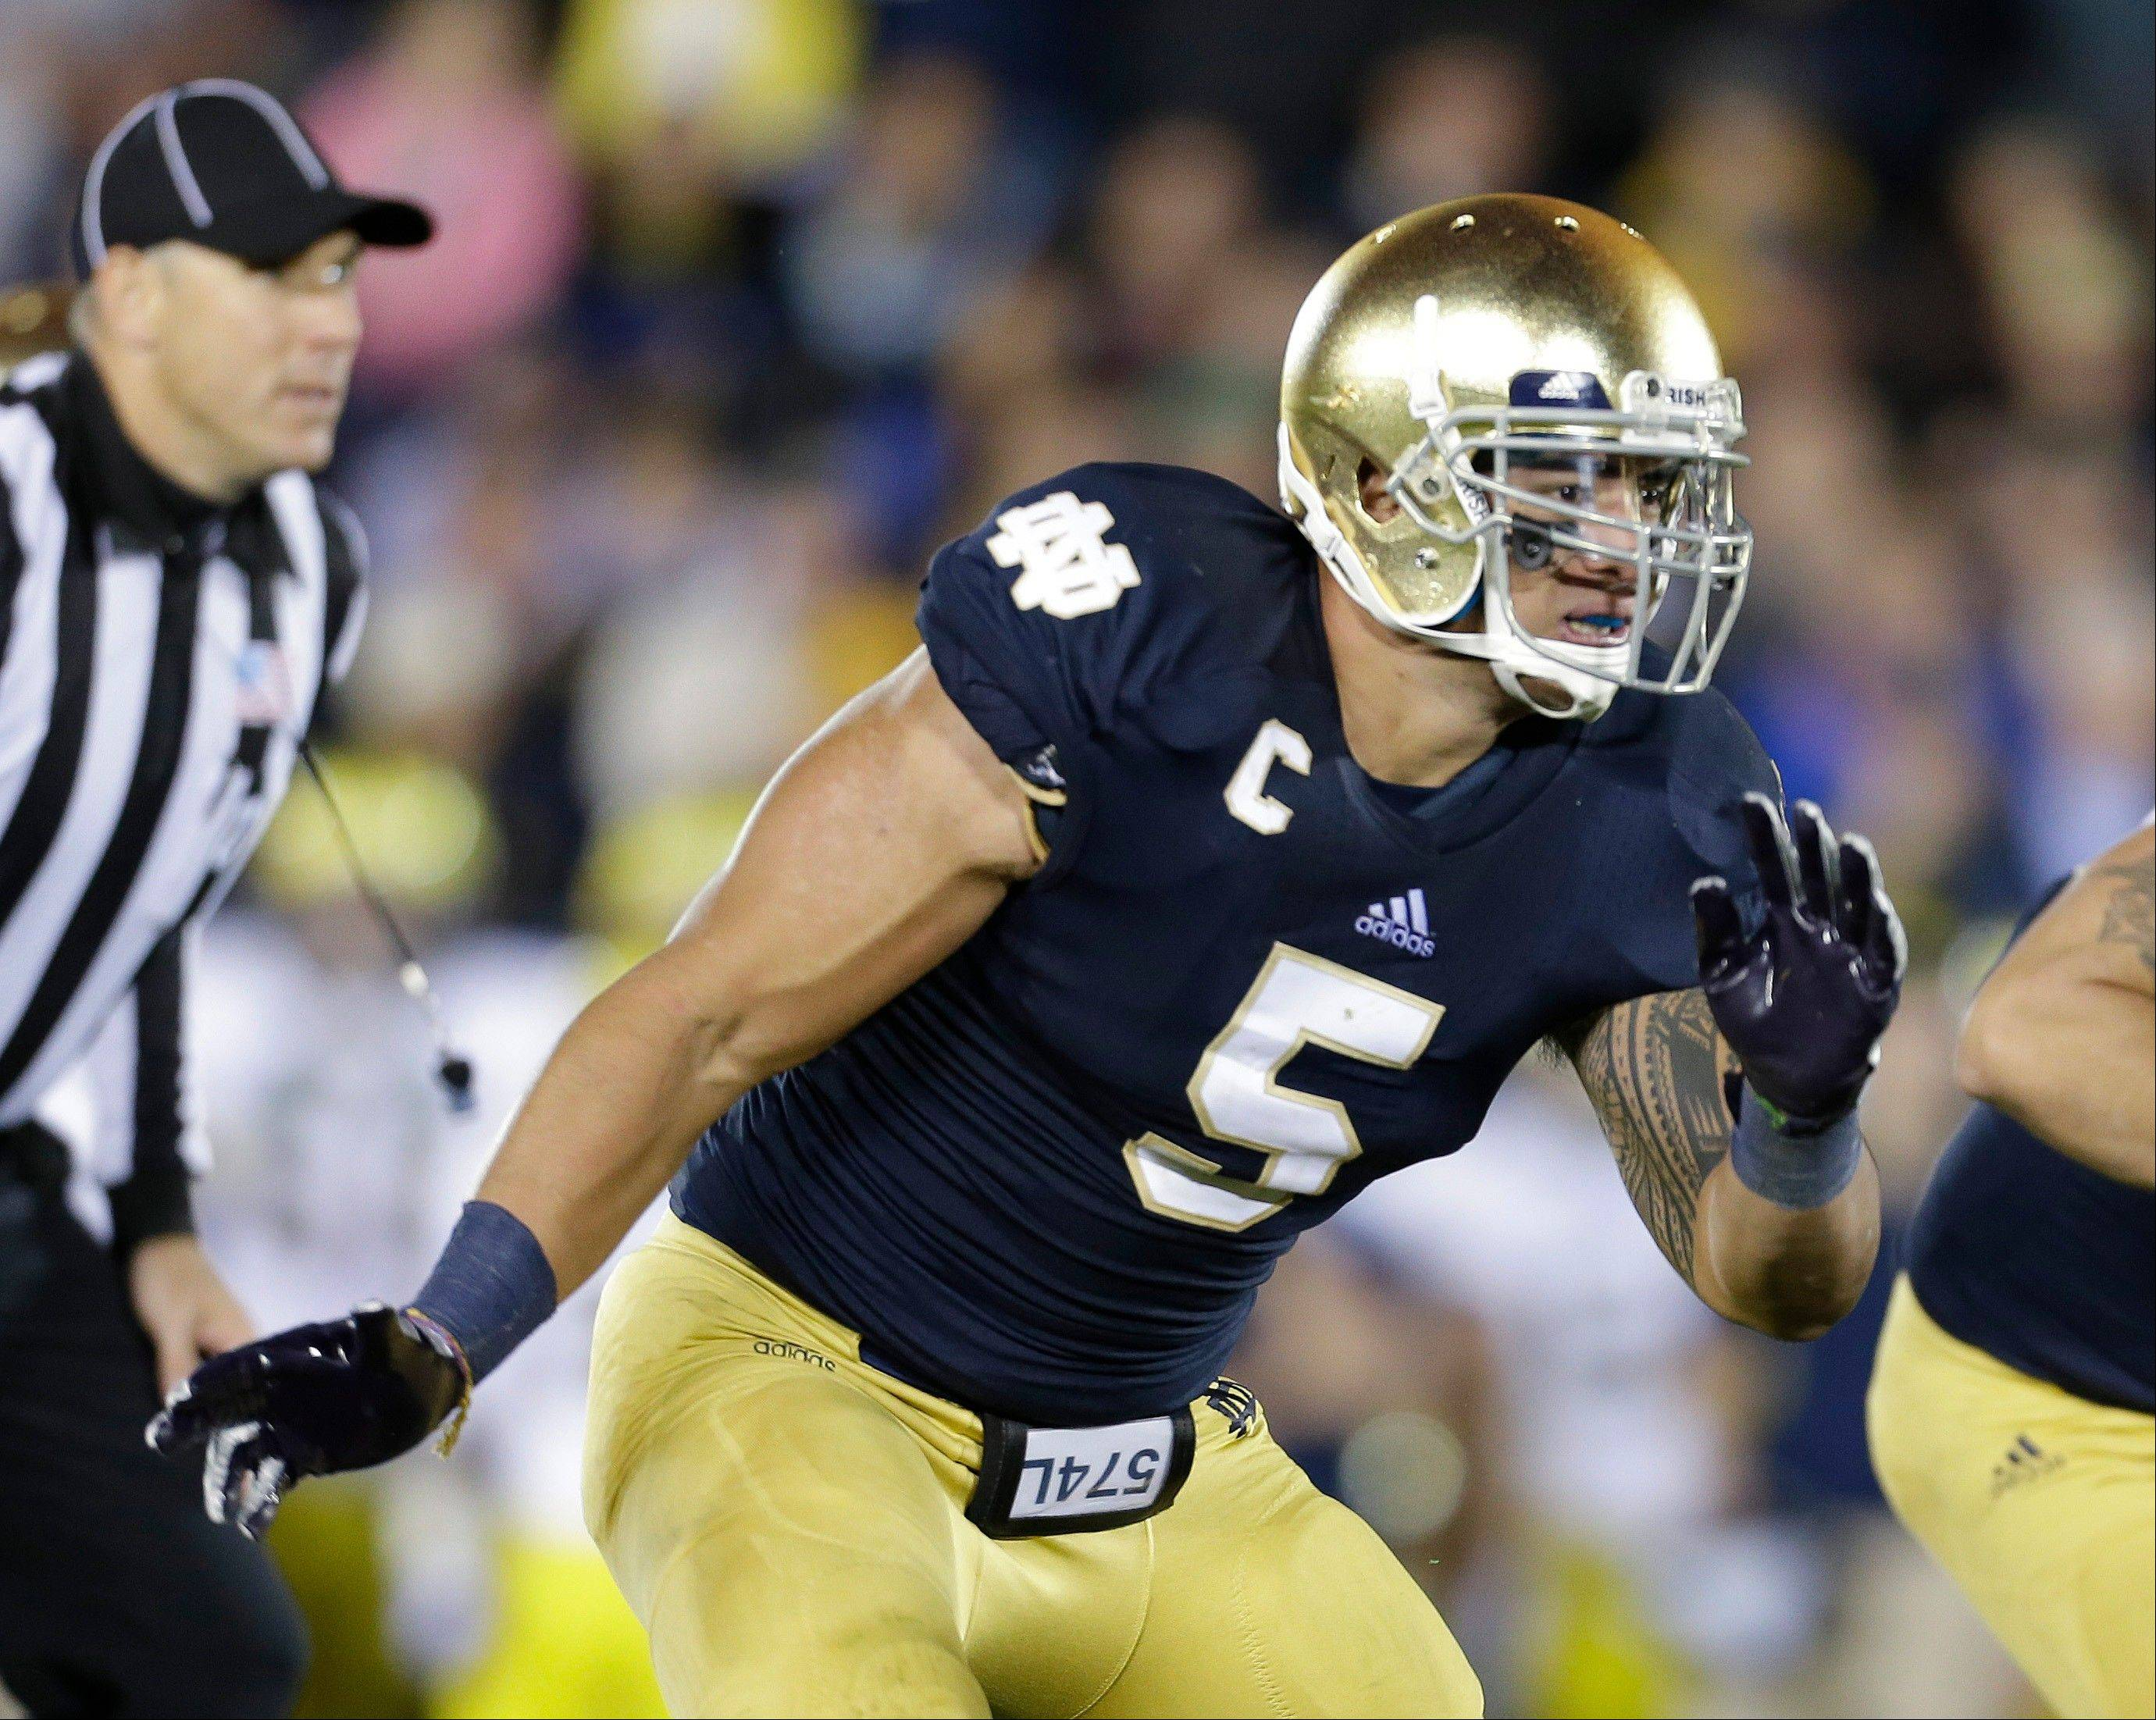 Notre Dame linebacker Manti Te'o pursues the football against Michigan, in South Bend, Ind. Notre Dame defensive coordinator Bob Diaco believes Manti Te�o is the finest football player in college.